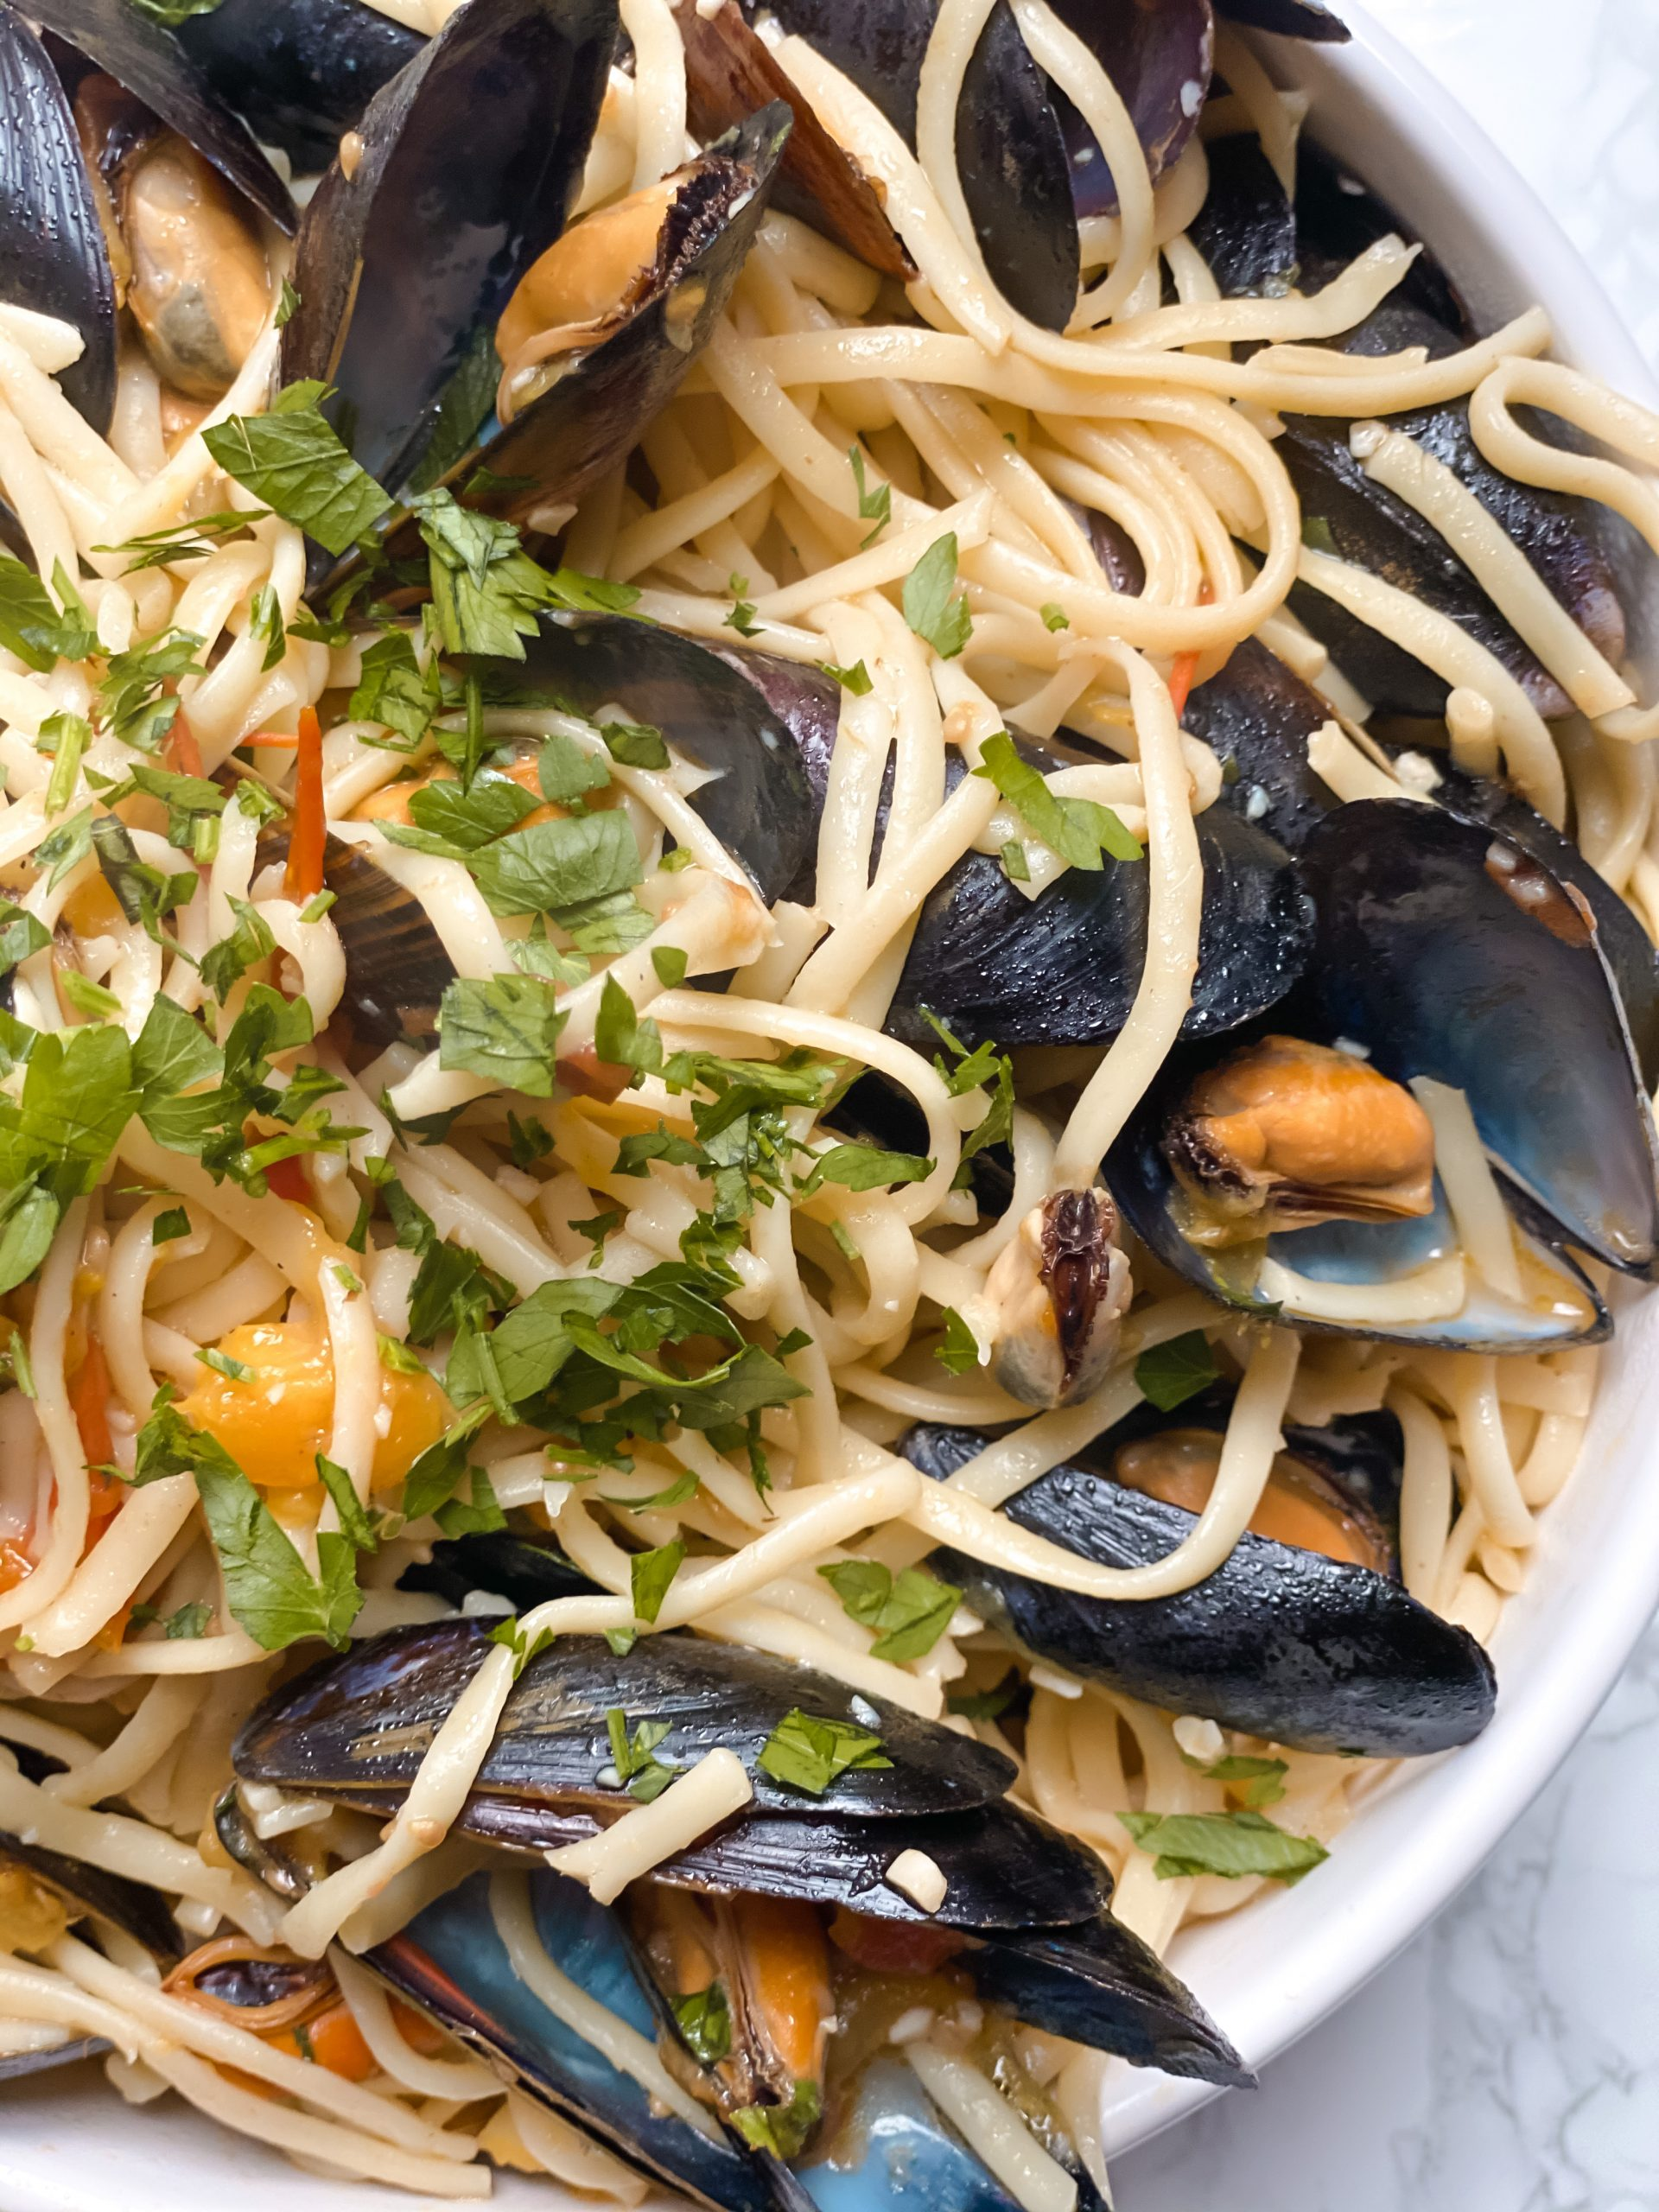 My Sunday Special, Linguine with Mussels